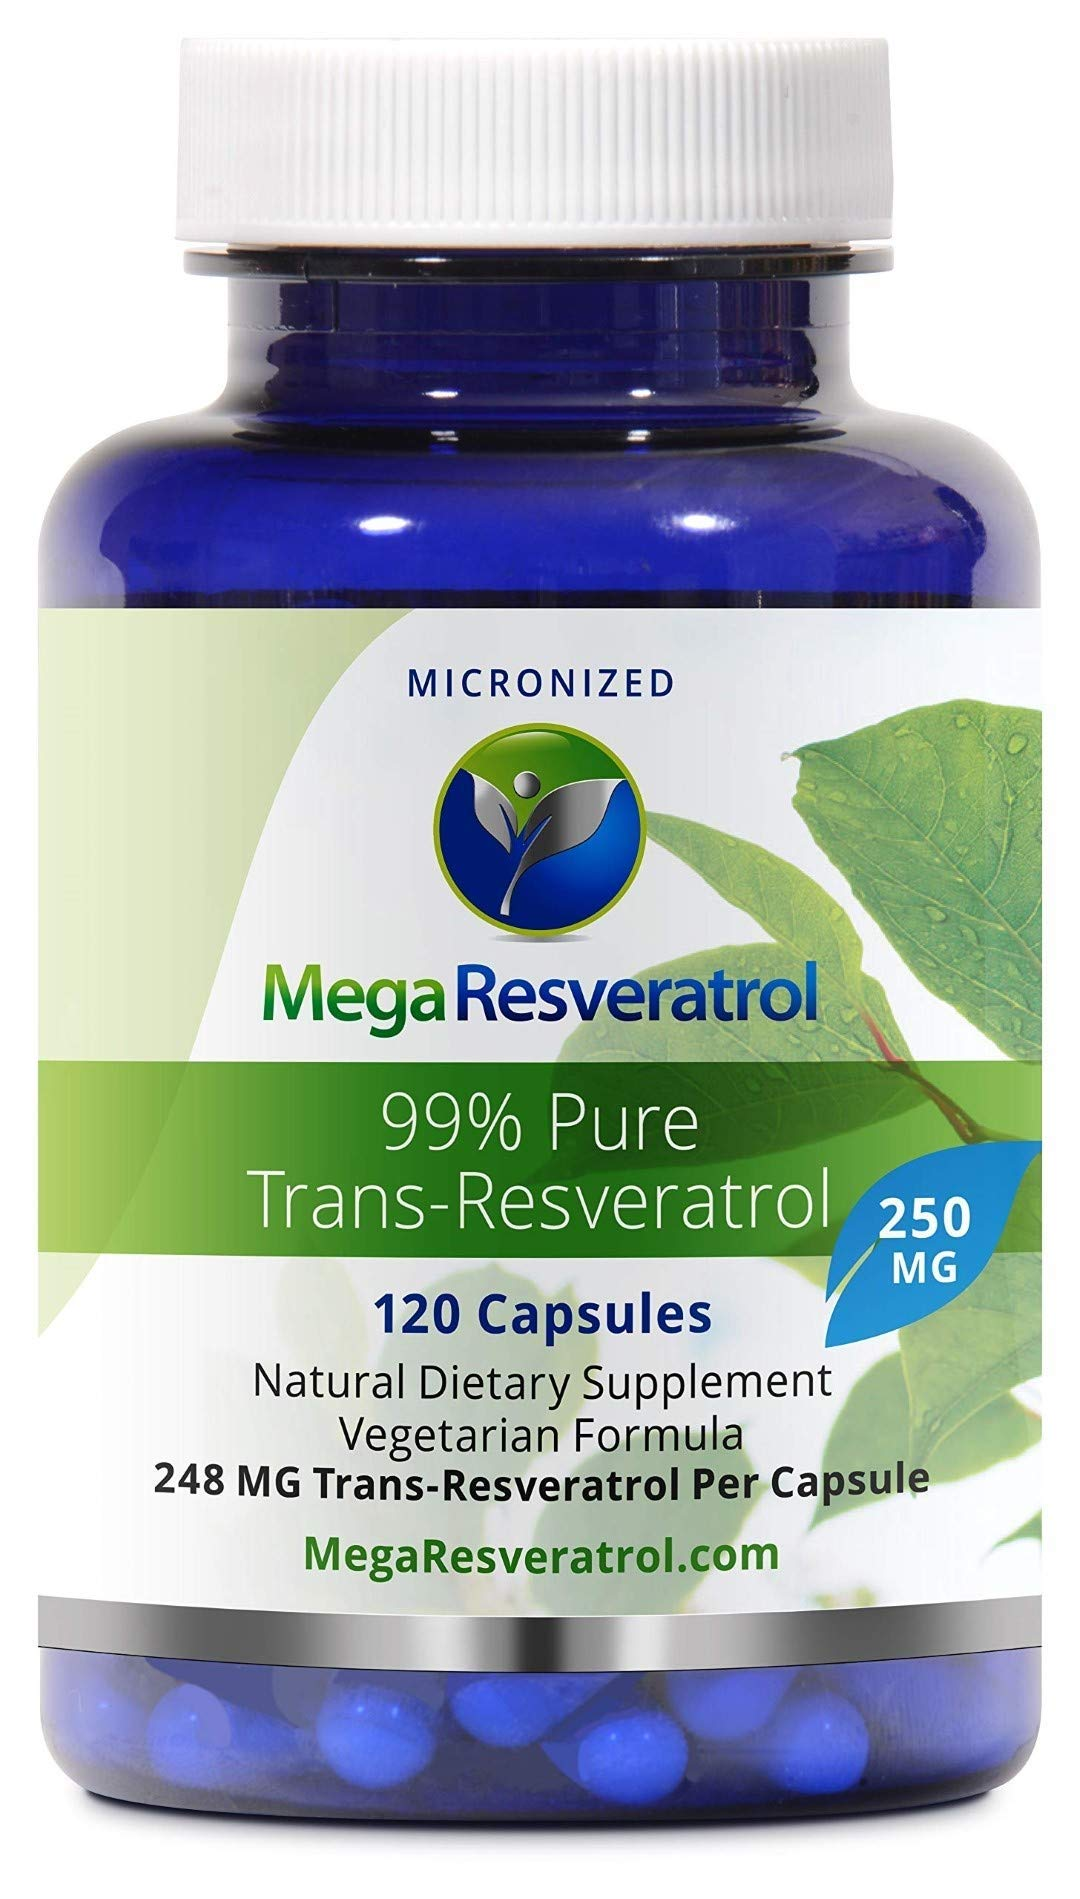 """Mega Resveratrol, Pharmaceutical Grade, 99% Pure, Micronized Trans-Resveratrol, 120 Capsules, 250 mg per Capsule. Purity Certified. Absolutely no Toxic""""Inactive Ingredients"""" Added. (120 Capsules)"""